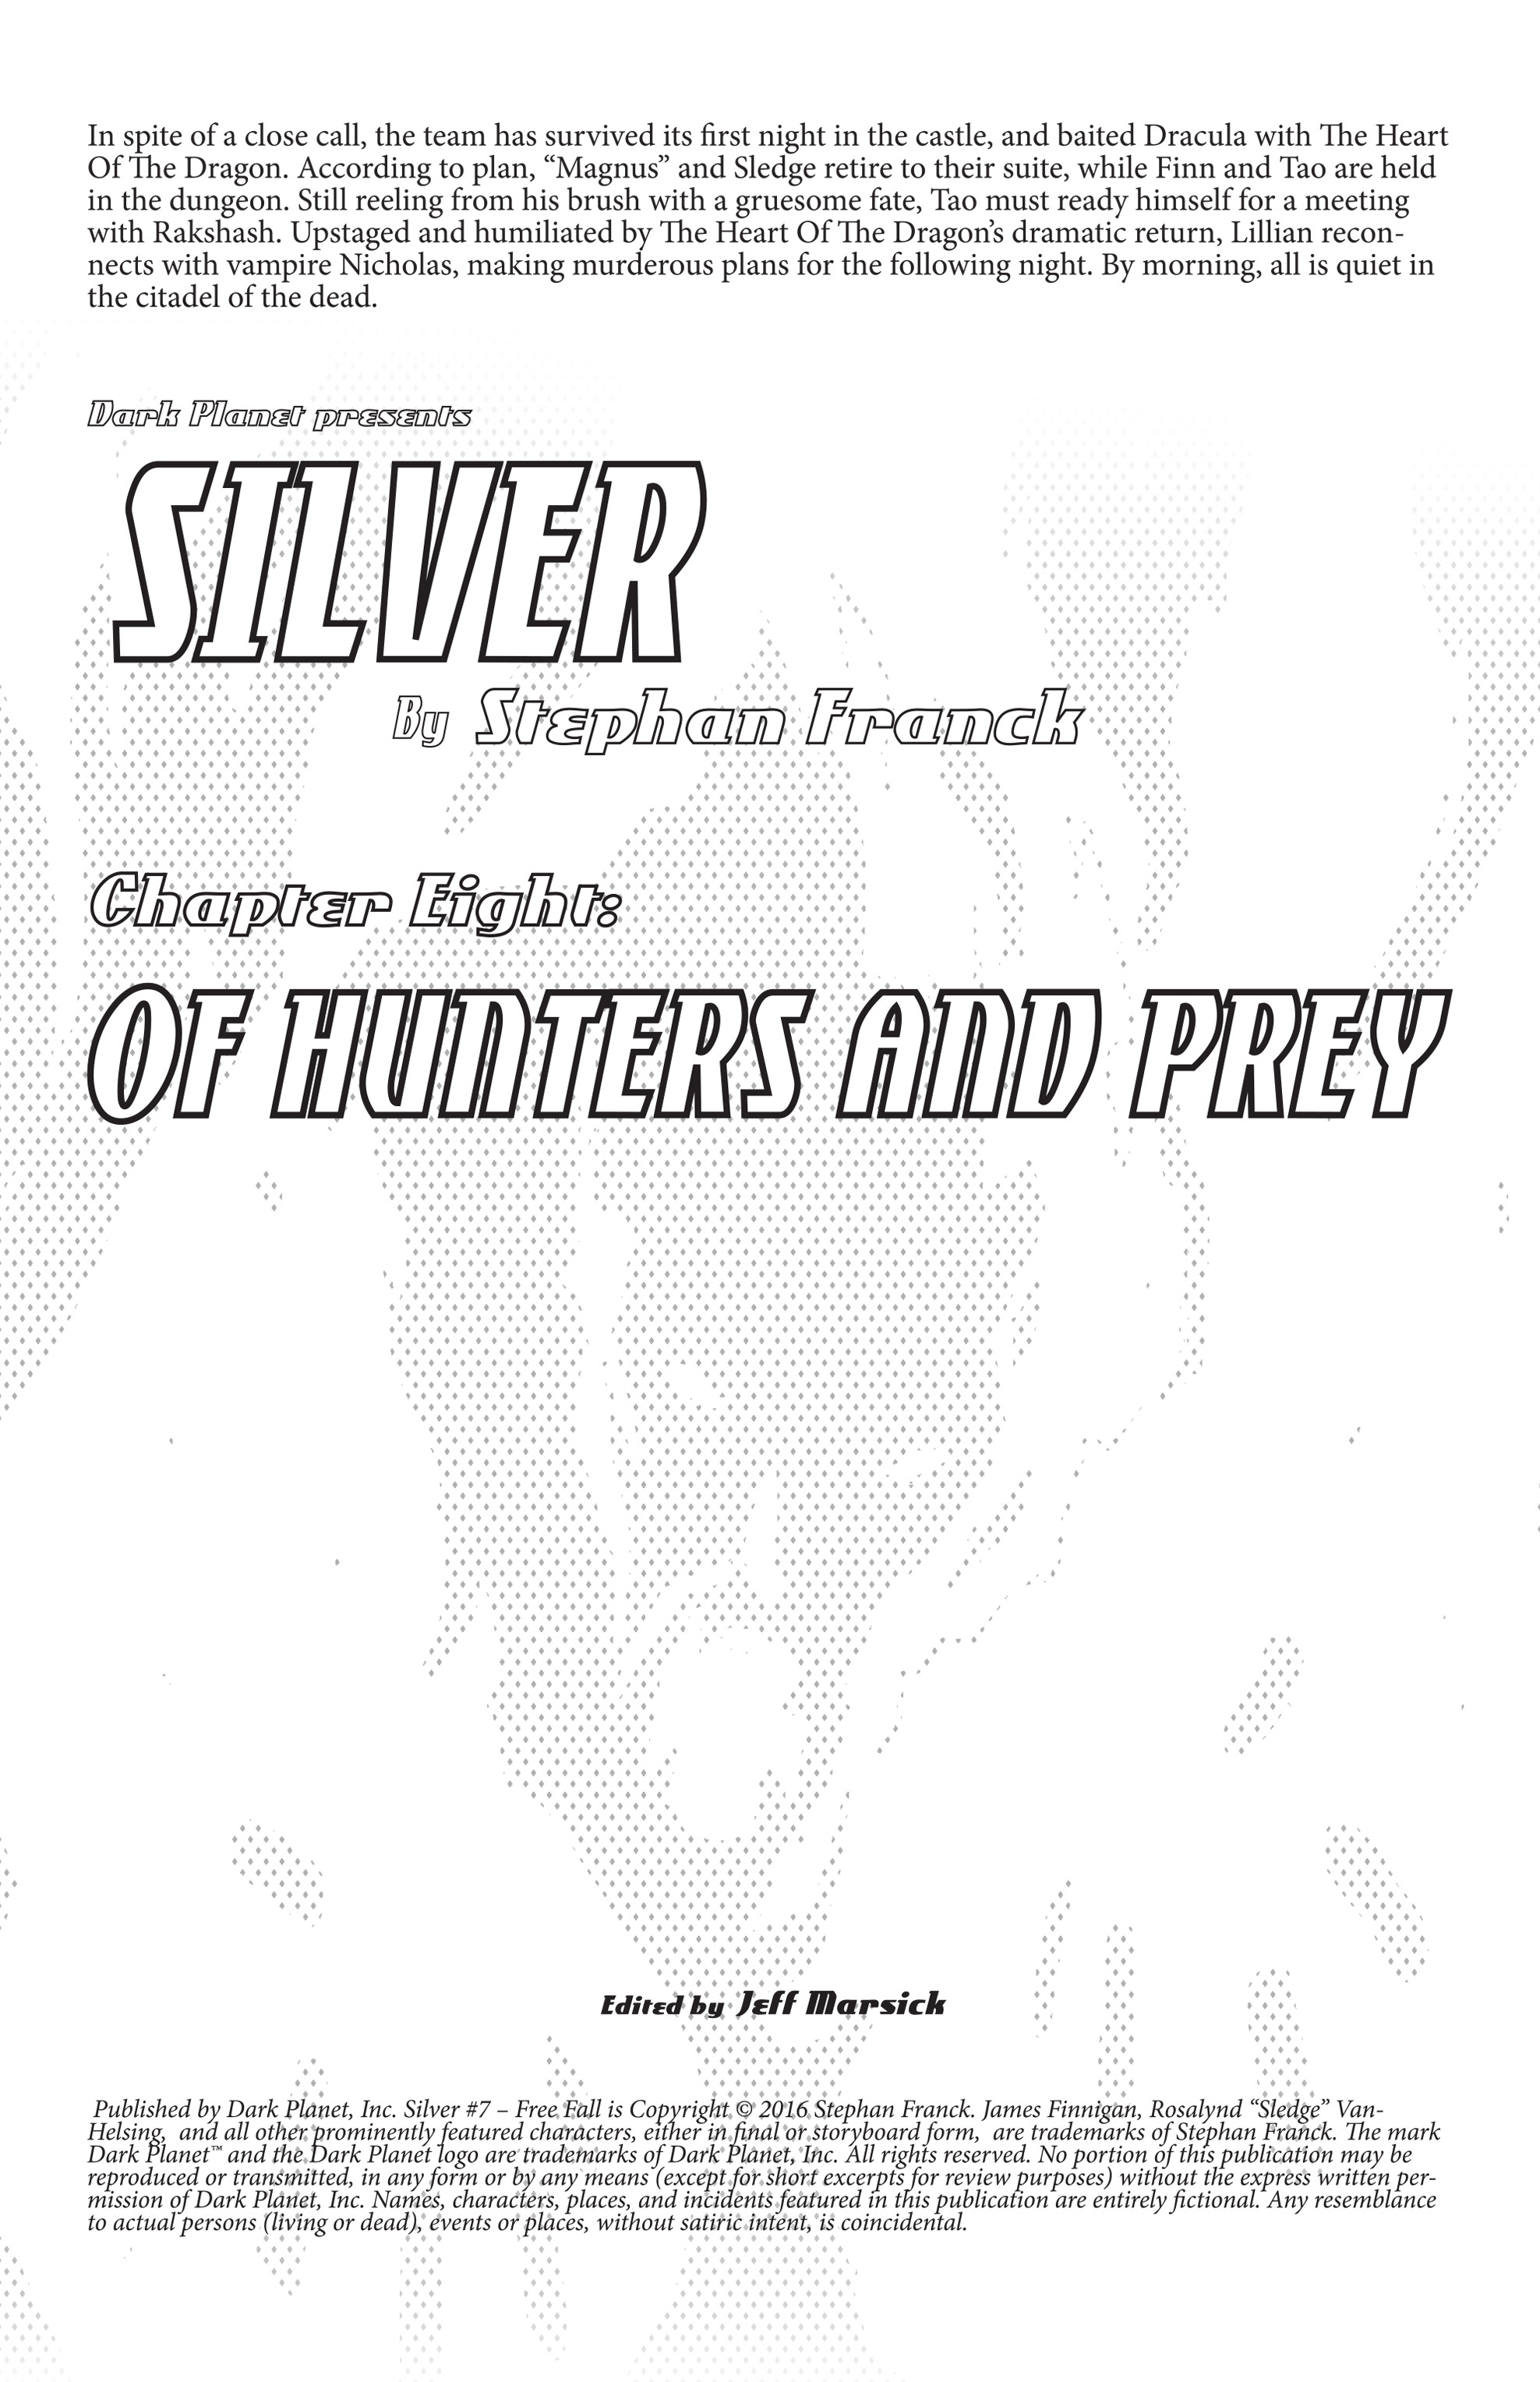 Read online Silver comic -  Issue #7 - 2